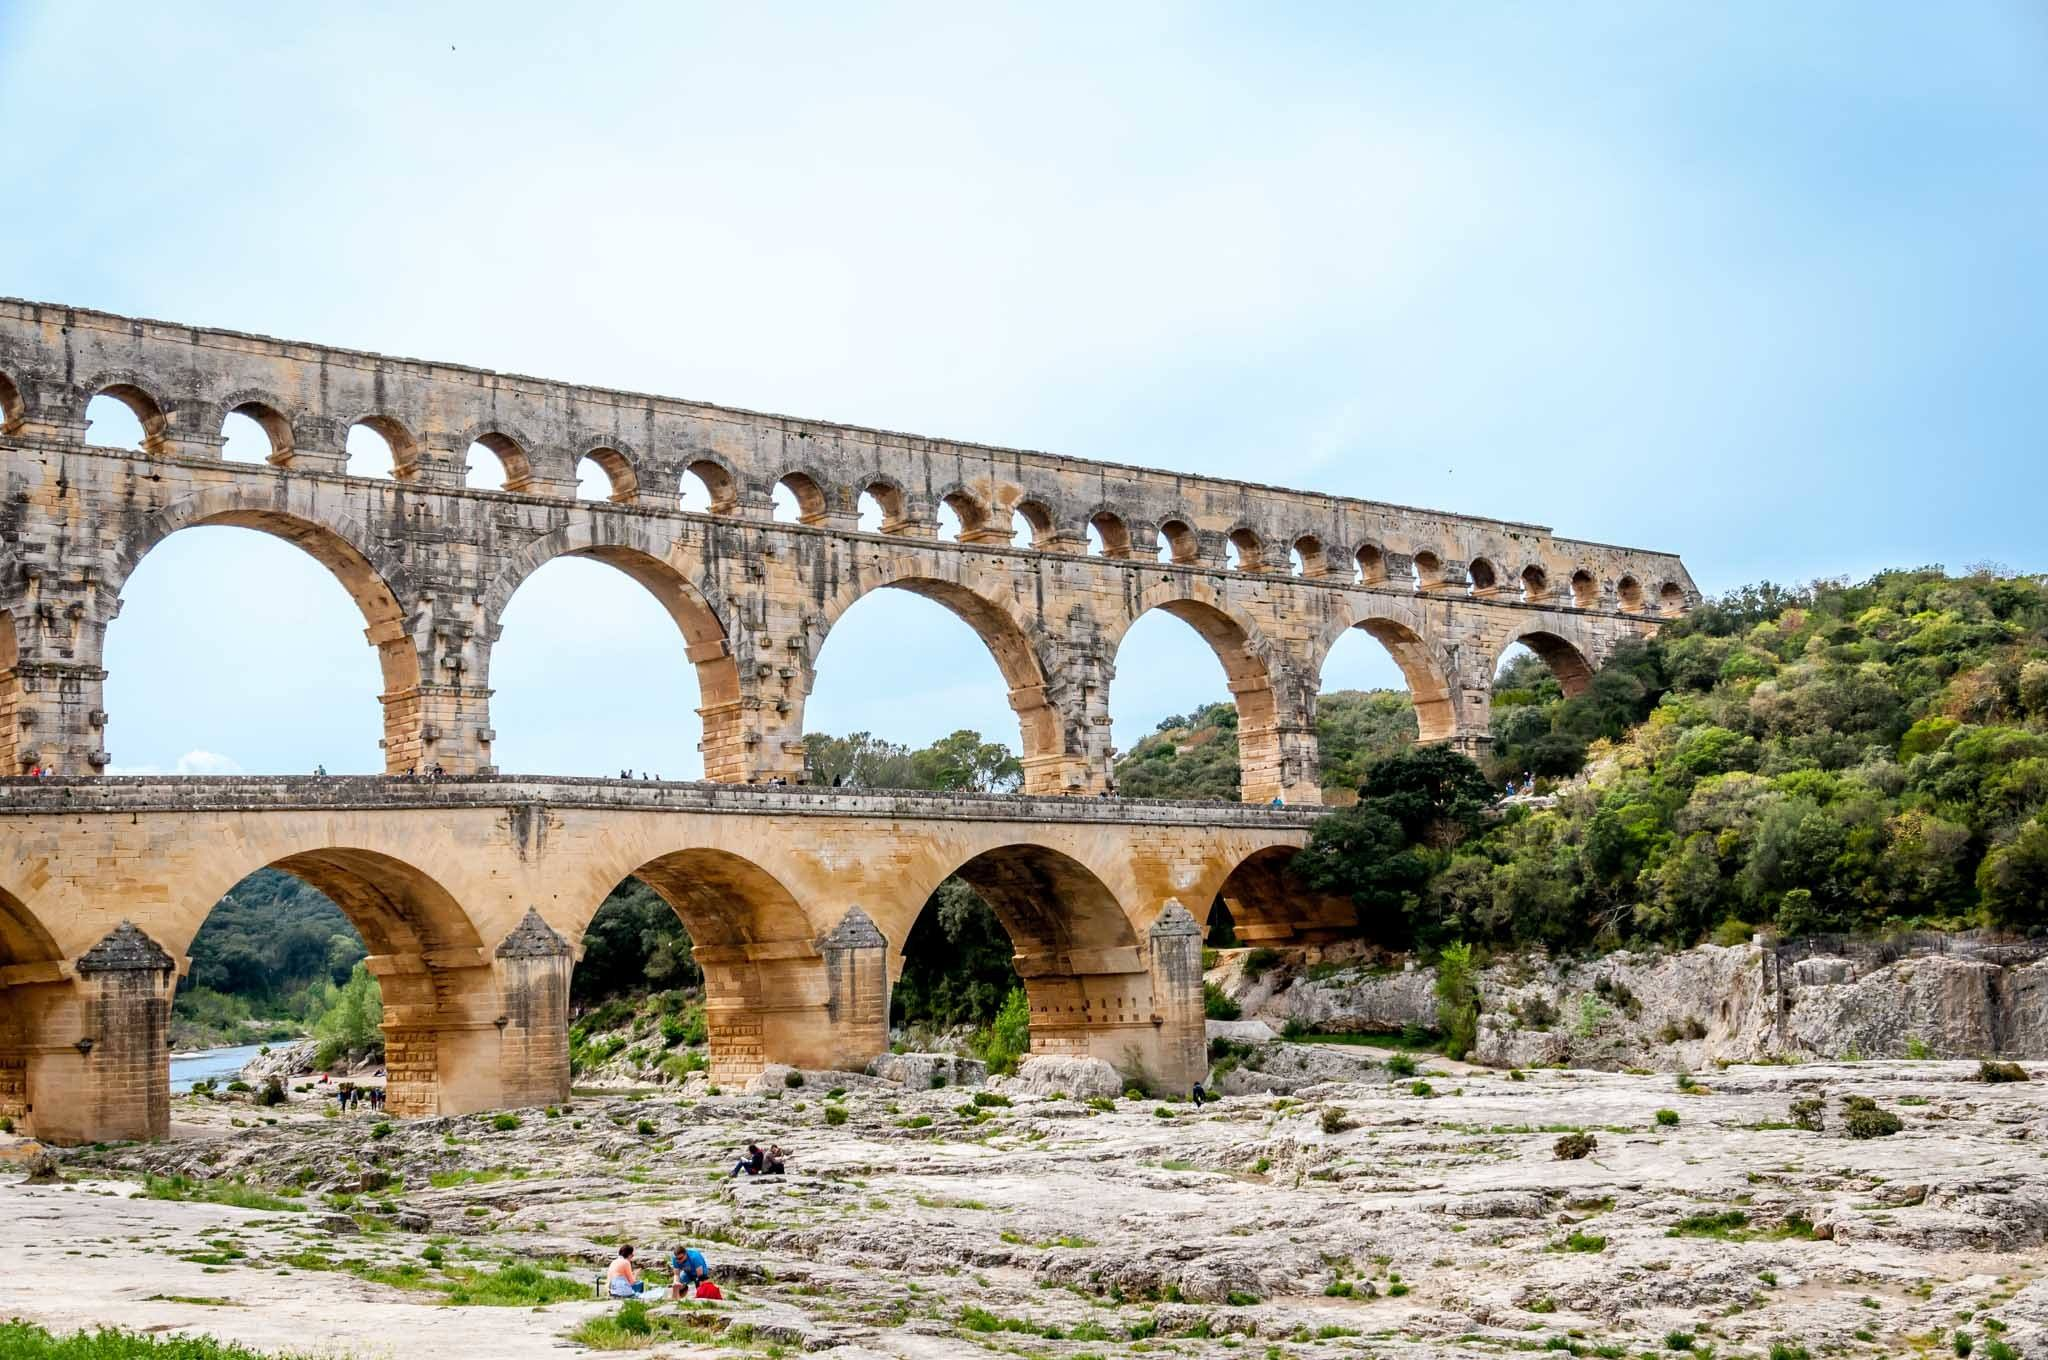 Arches of the ancient aqueduct, the Pont du Gard, over the Gardon River